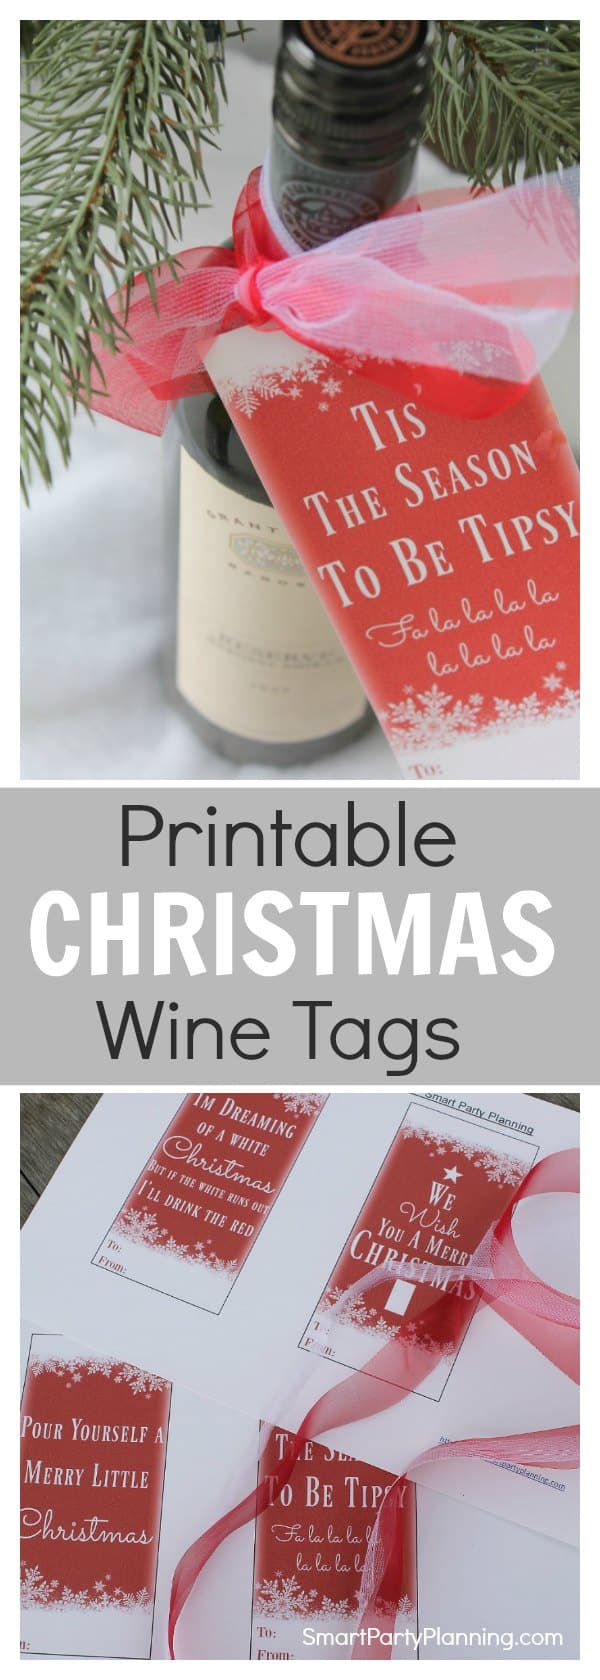 Easy DIY Christmas wine tags. There are four designs to choose from, which easily attach to the neck of a wine bottle using your favorite Christmas ribbon. It's the perfect easy craft project for a quick Christmas or host gift. Download the instant printable to use right away. This is gift giving made easy. Just print, cut and attach. It's super simple.